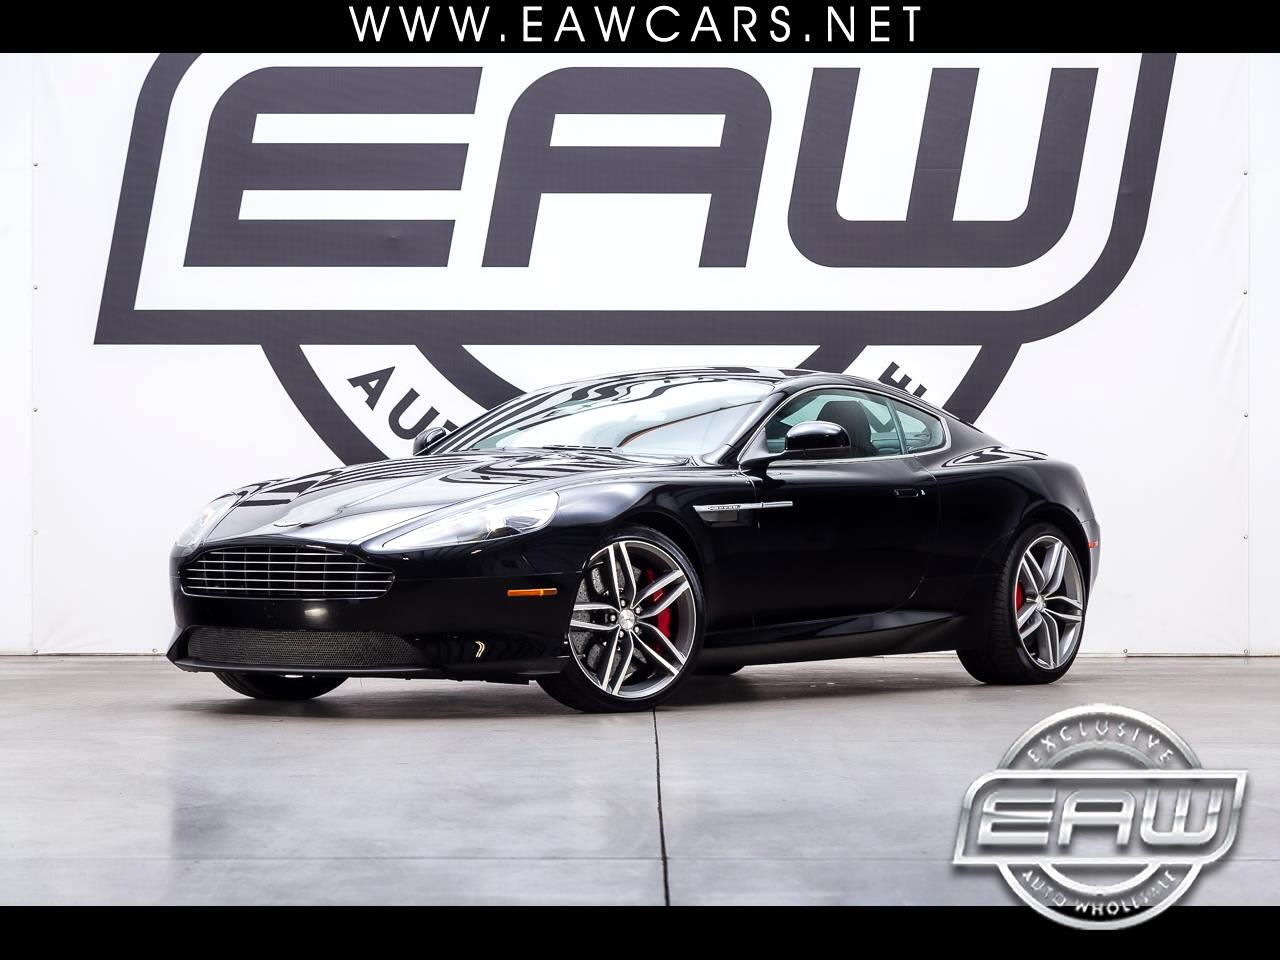 Aston Martin DB9 Coupe 2015